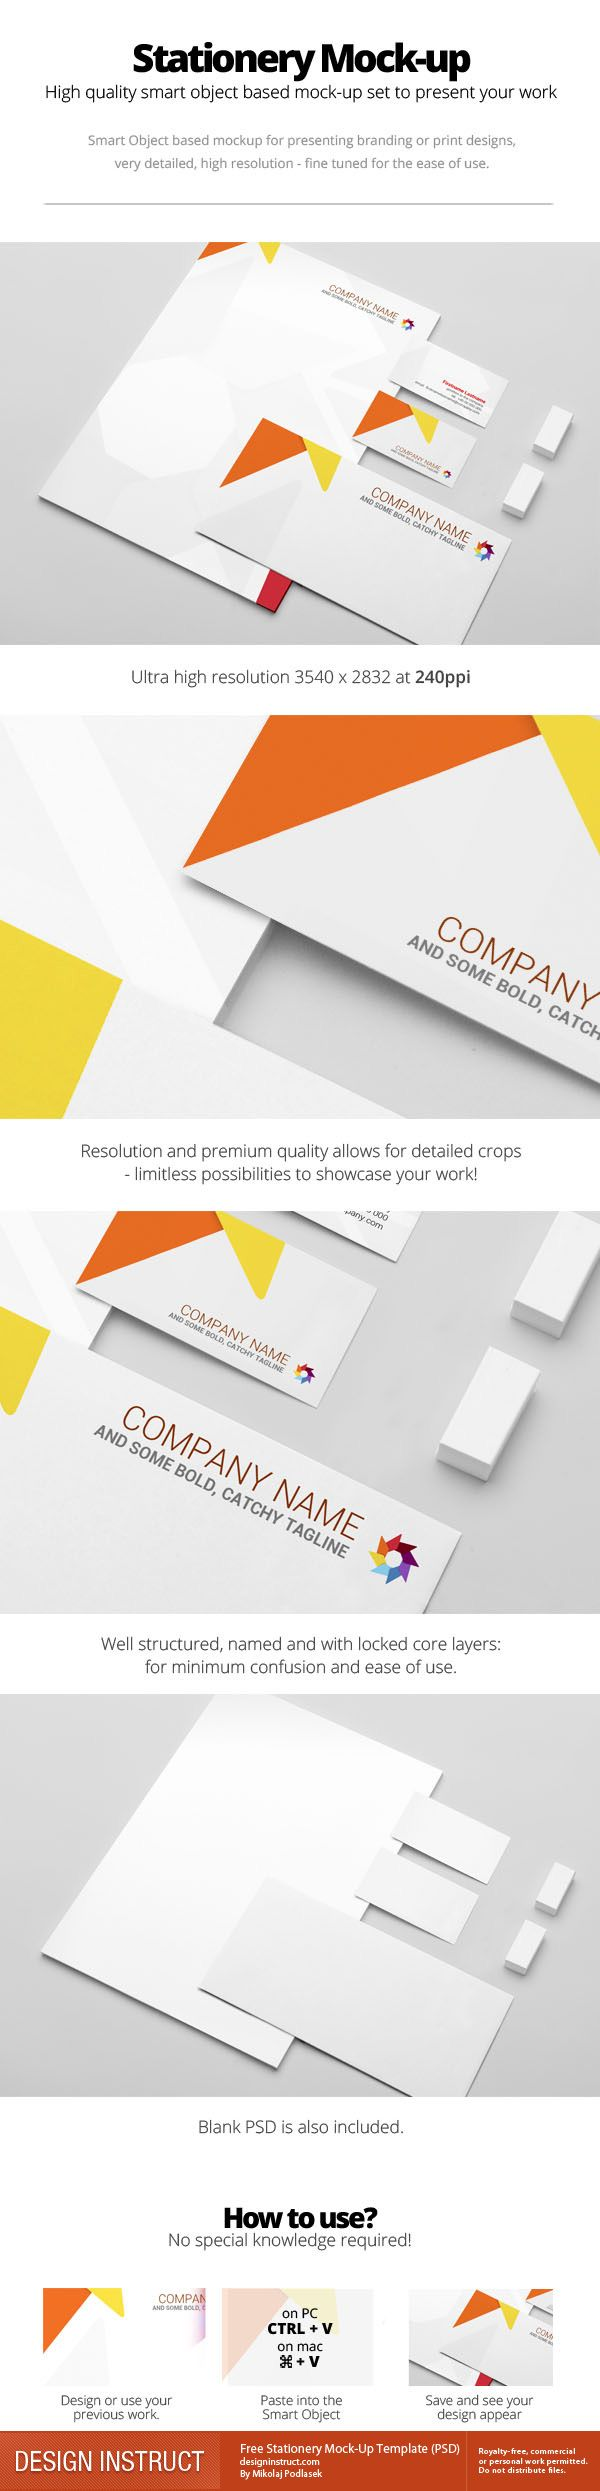 This free psd is for mocking up and presenting your stationery this free psd is for mocking up and presenting your stationery designs letterhead business card and envelope the psd is well organized and uses reheart Gallery